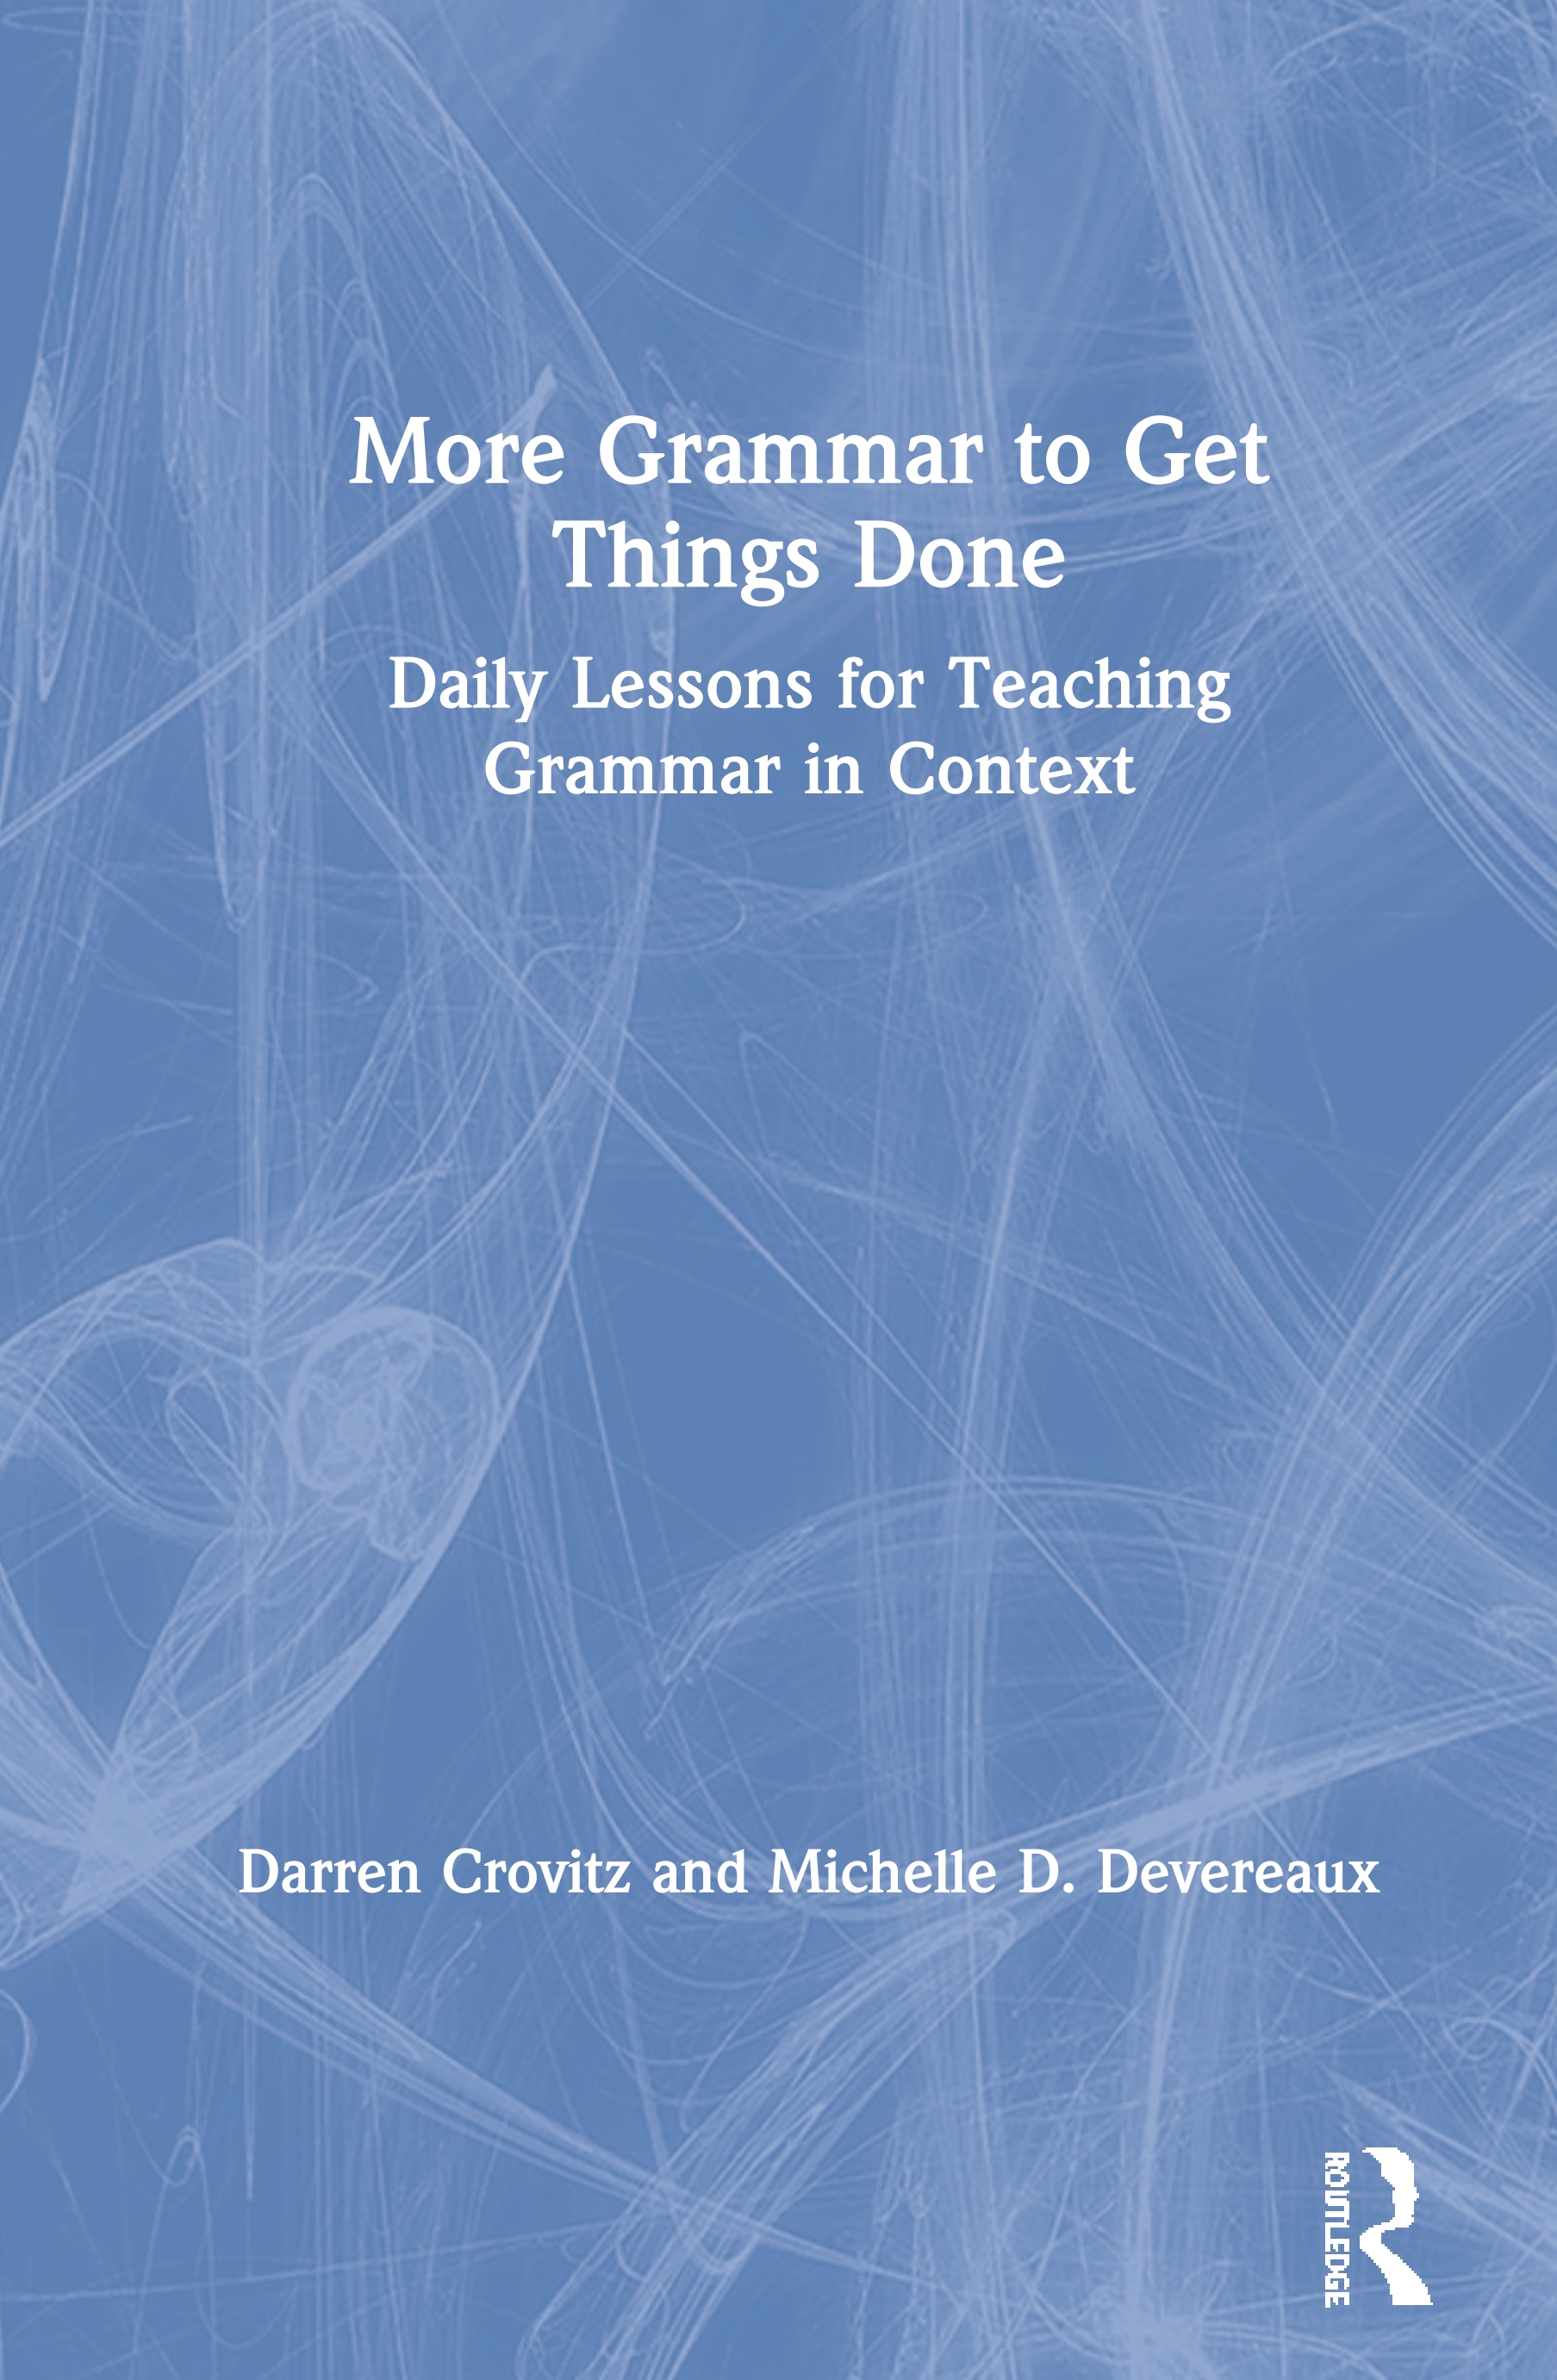 More Grammar to Get Things Done: Daily Lessons for Teaching Grammar in Context book cover